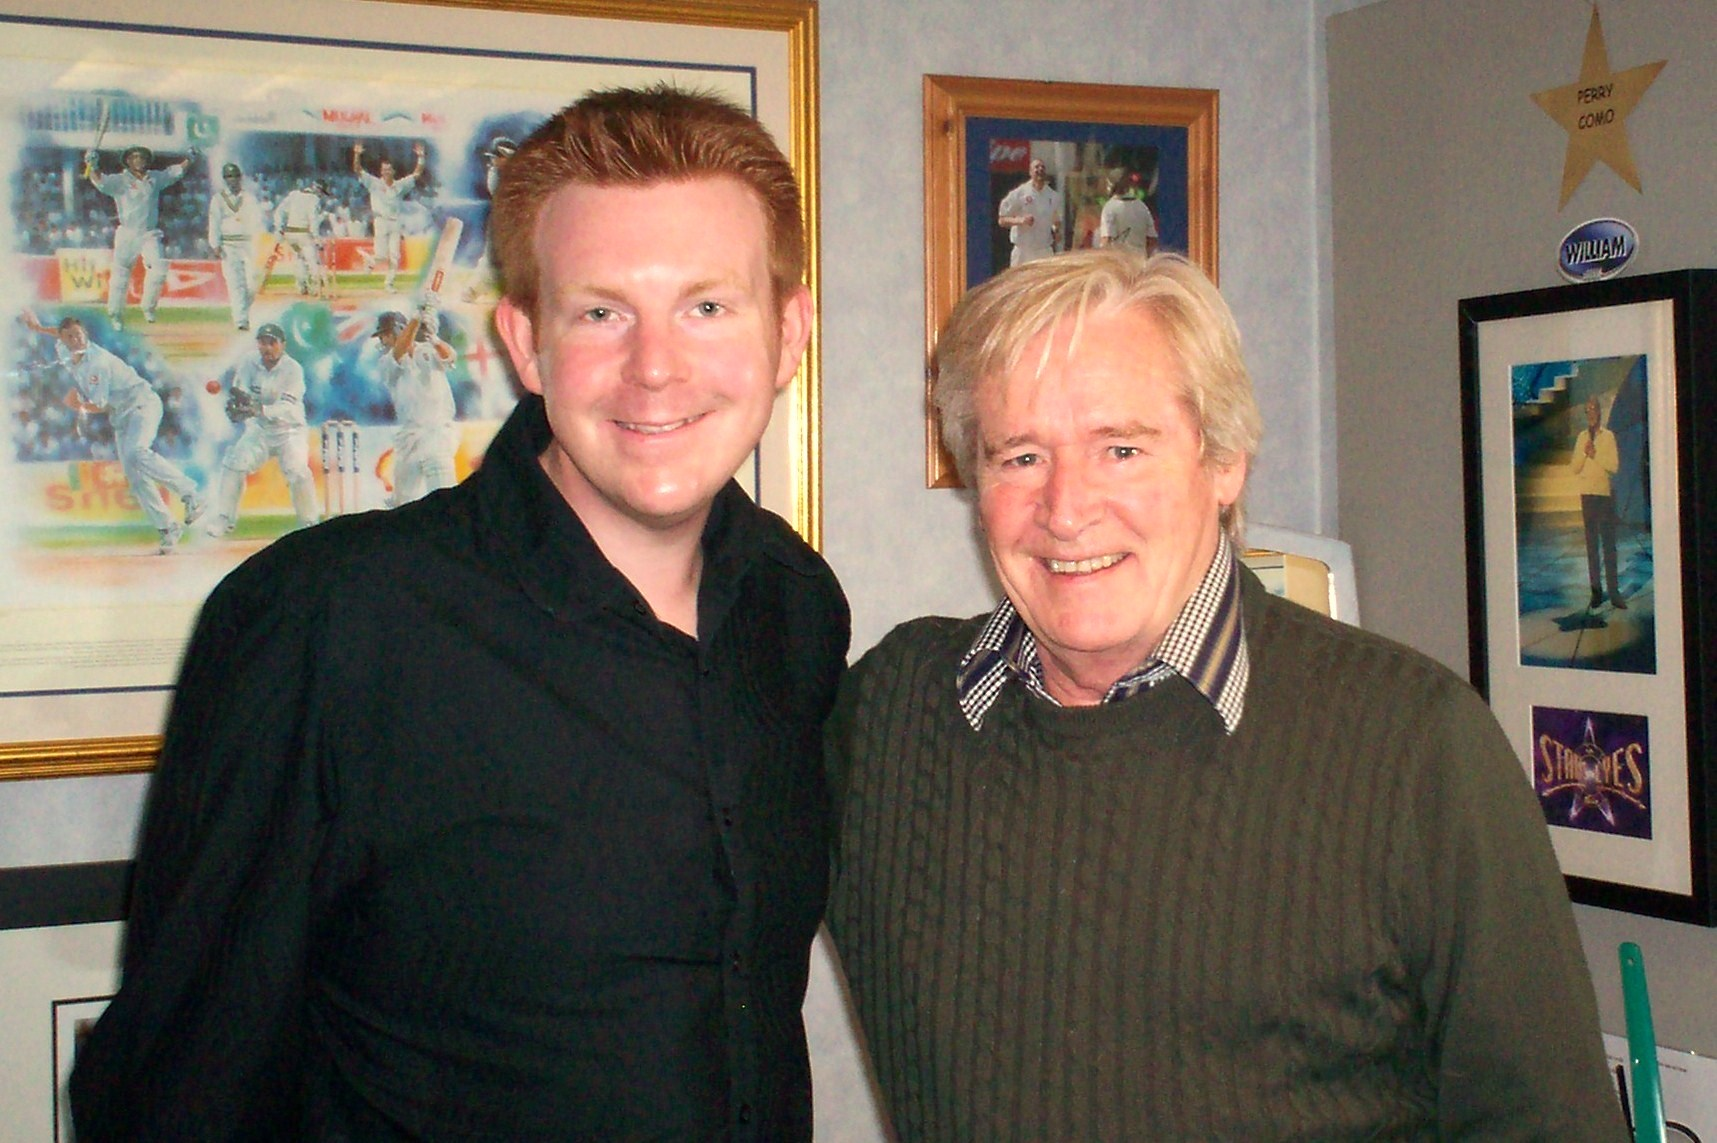 coronation street archives celebrity radio by alex belfield william roache life story interview god and spirituality